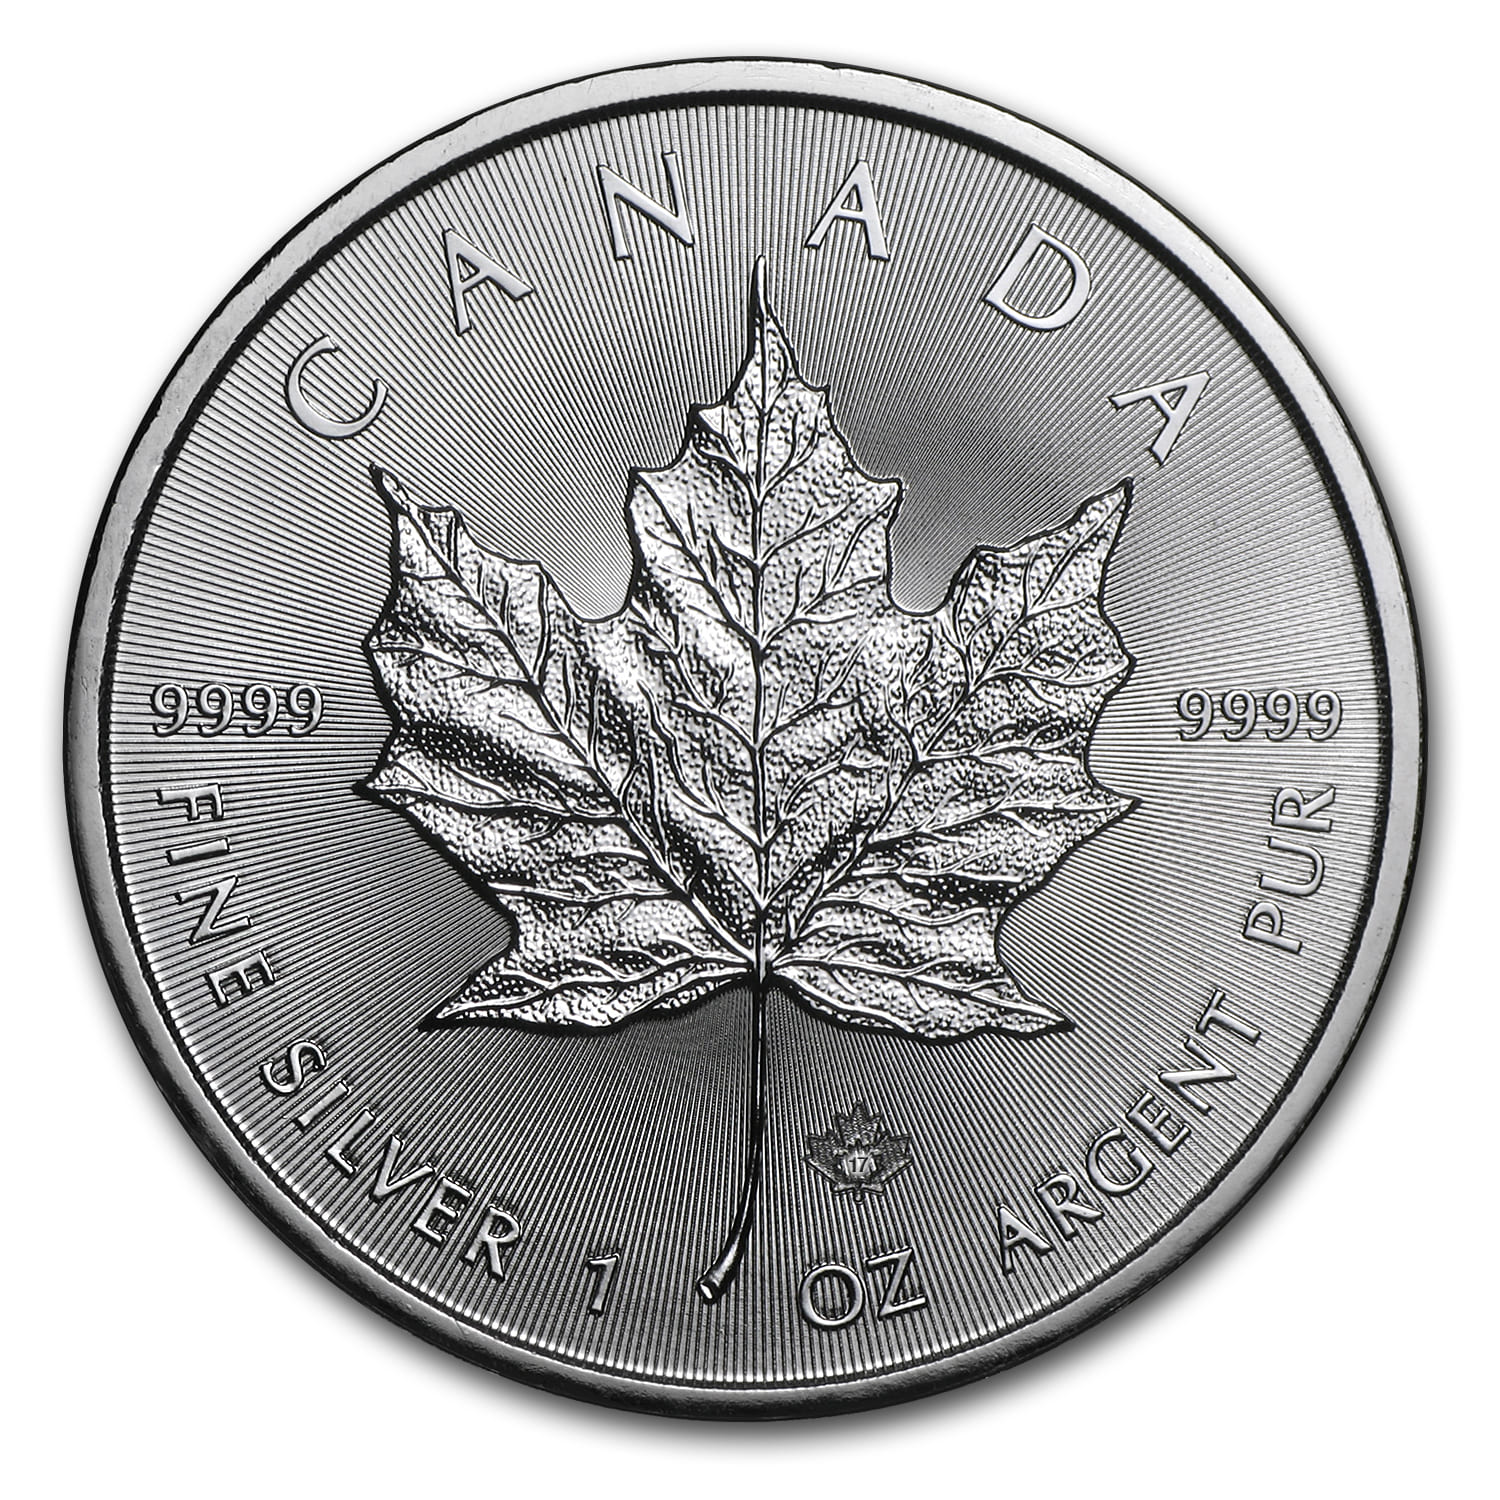 2017 Canada 1 oz Silver Maple Leaf BU